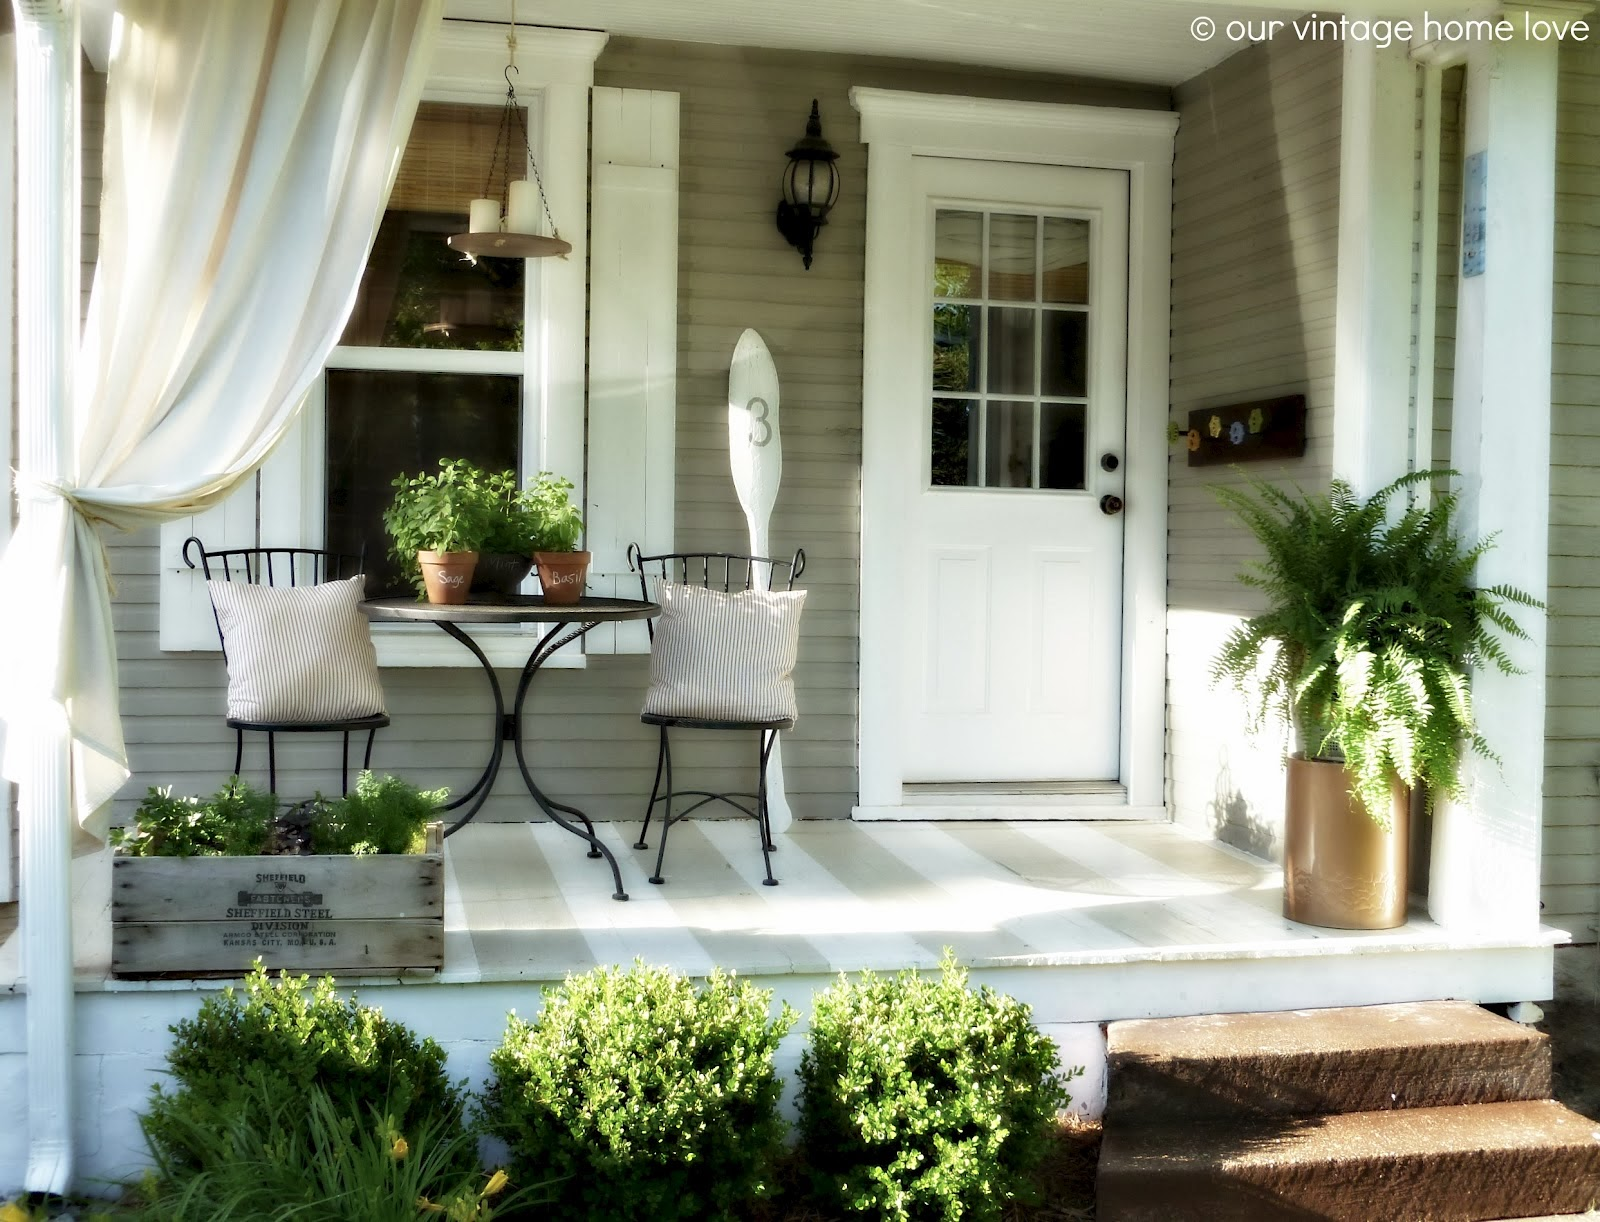 best front porch decorating ideas for spring gallery - mericamedia